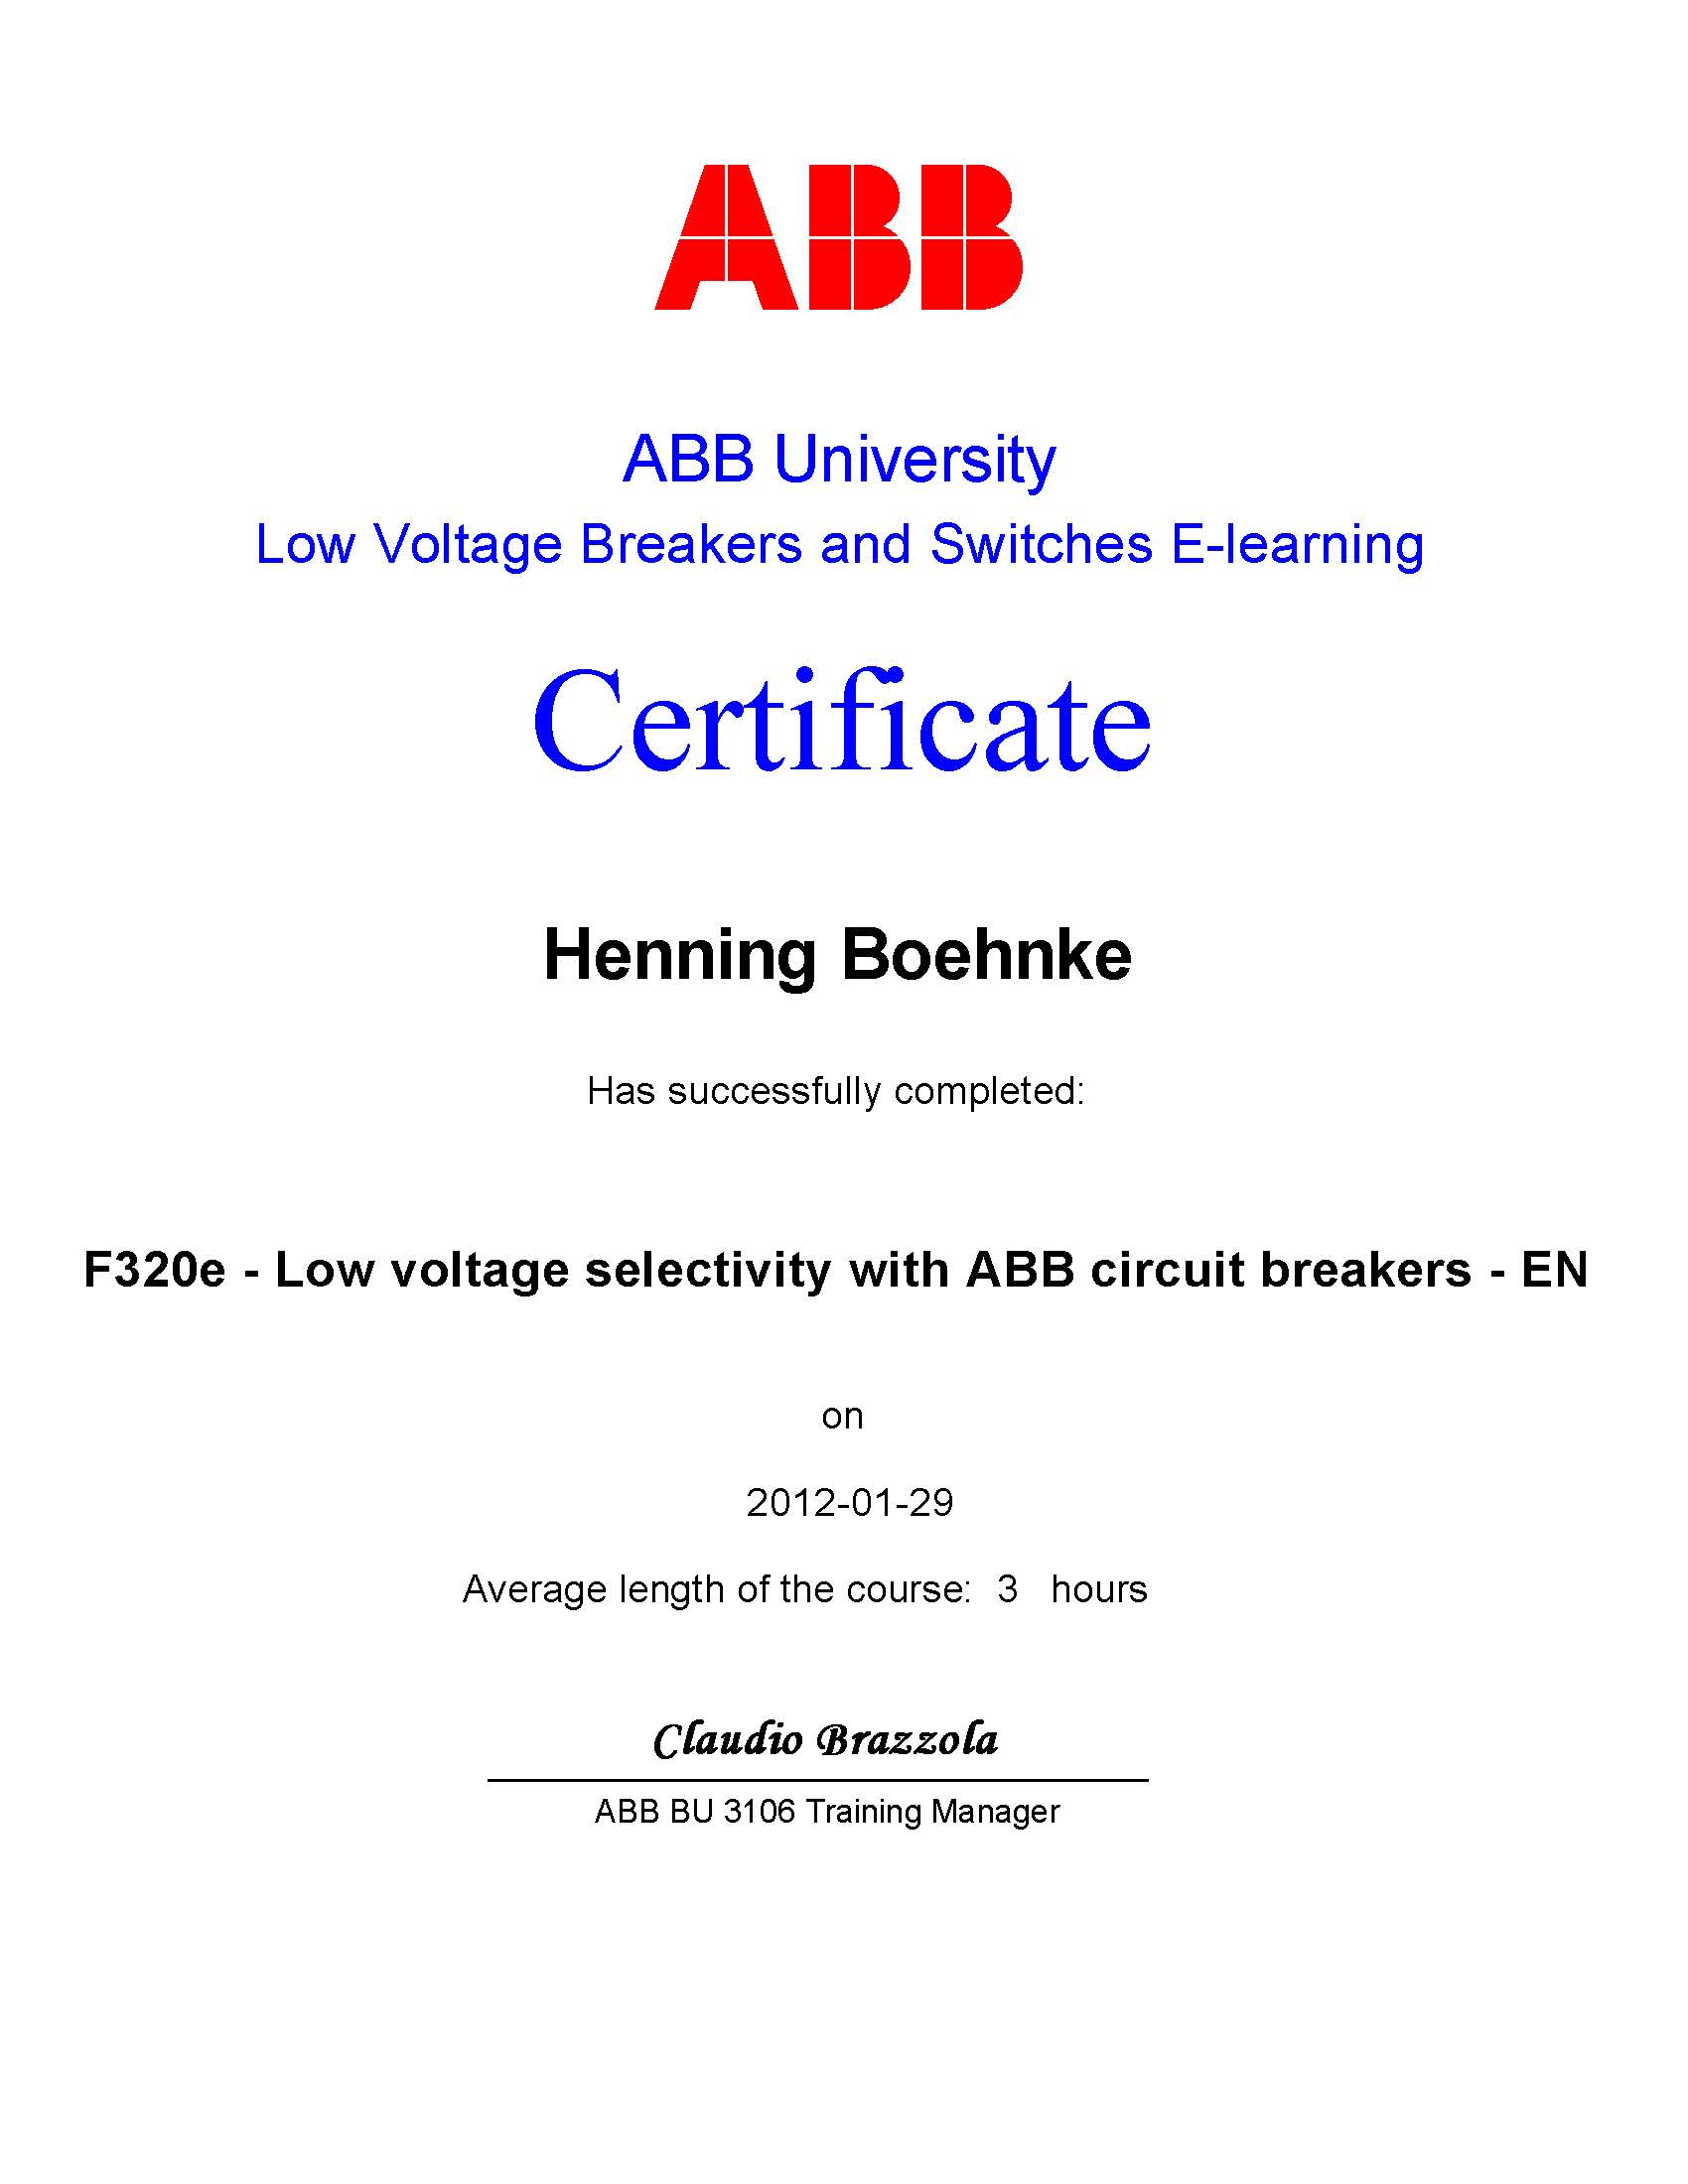 Low Voltage Selectivity with ABB Circuit Breakers